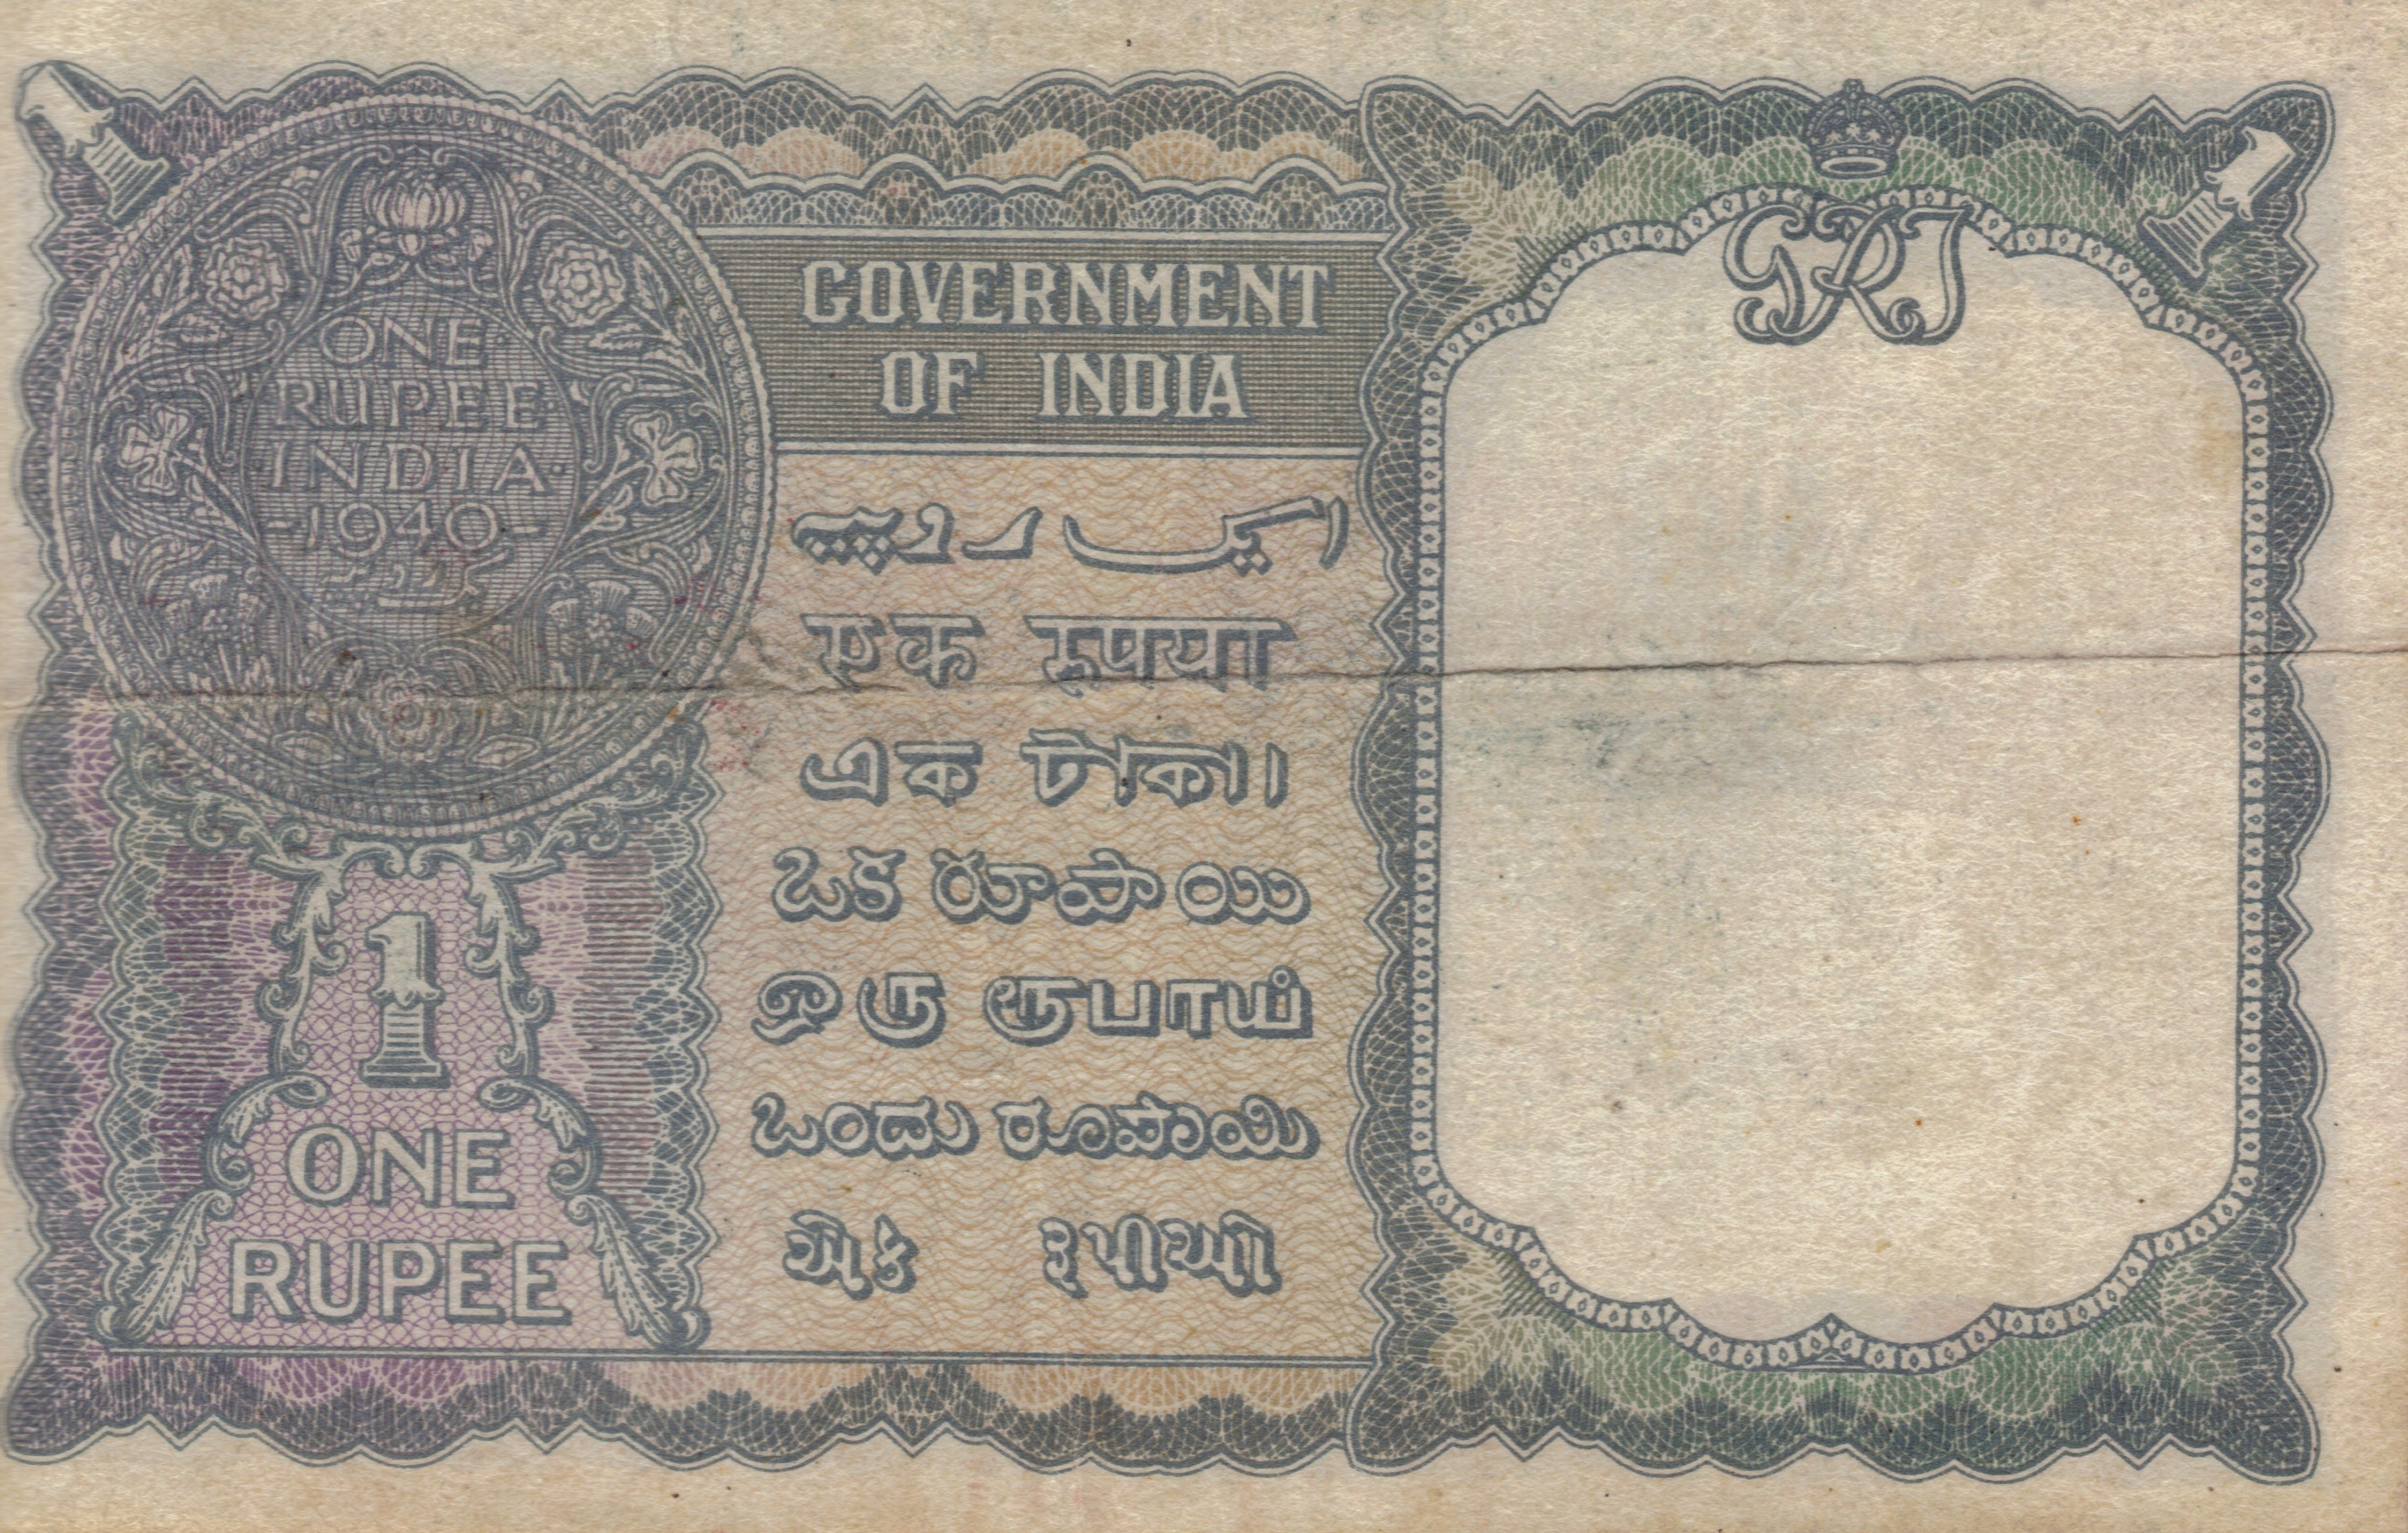 Indian Rupee Backround Full Hd Backgrounds 4600x2928 2563 Kb